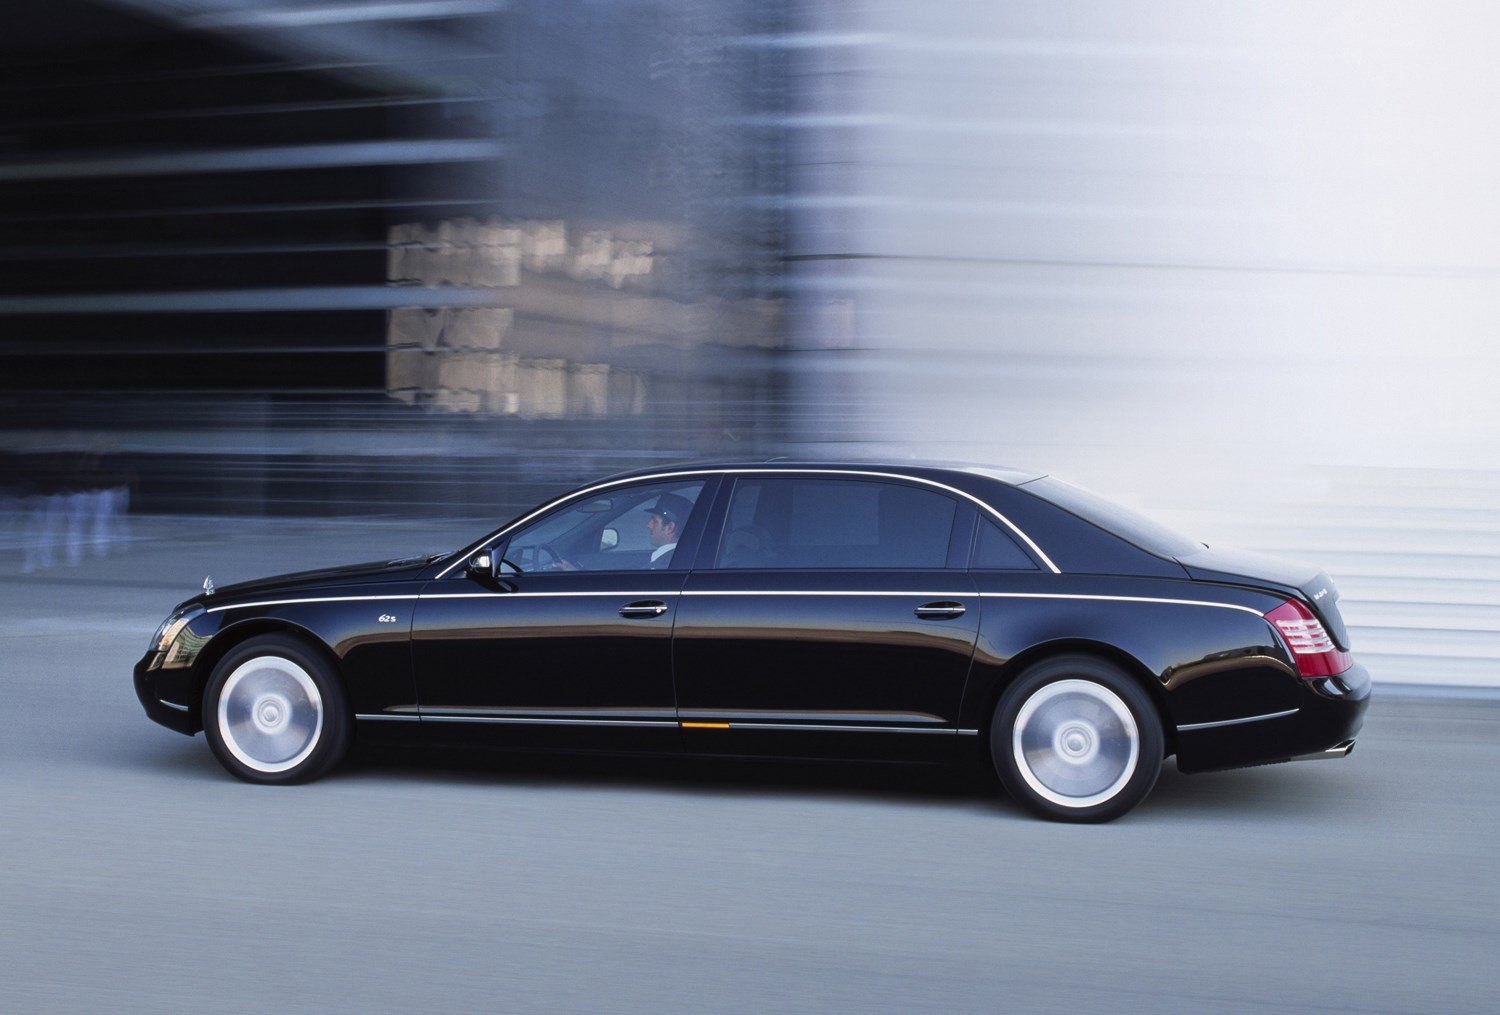 View all images of the maybach 62 03 12